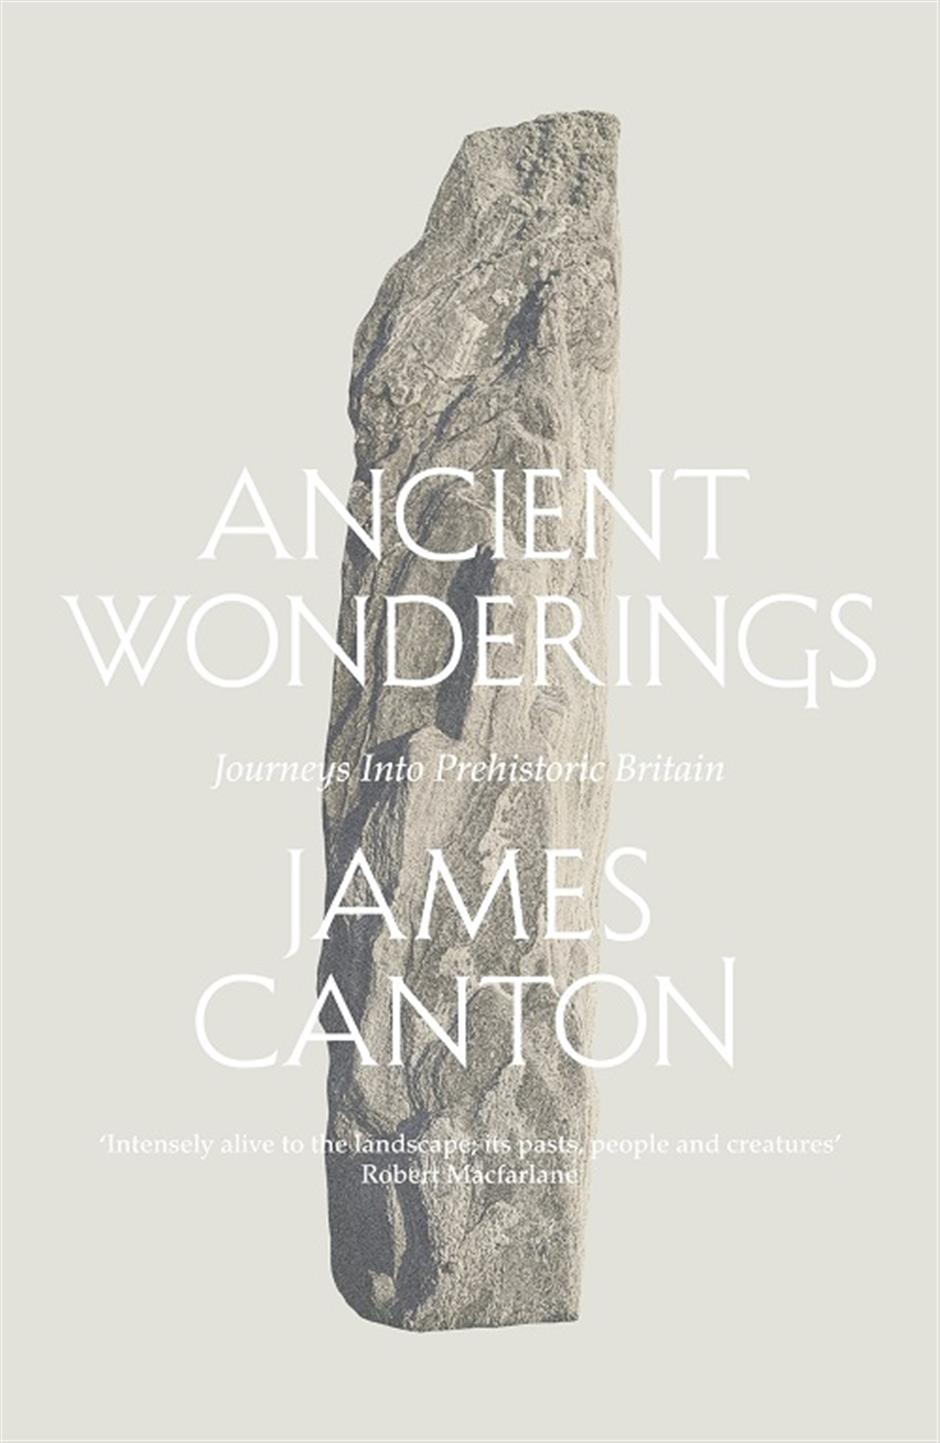 James Canton: Ancient Wonderings: Journeys into Prehistoric Britain